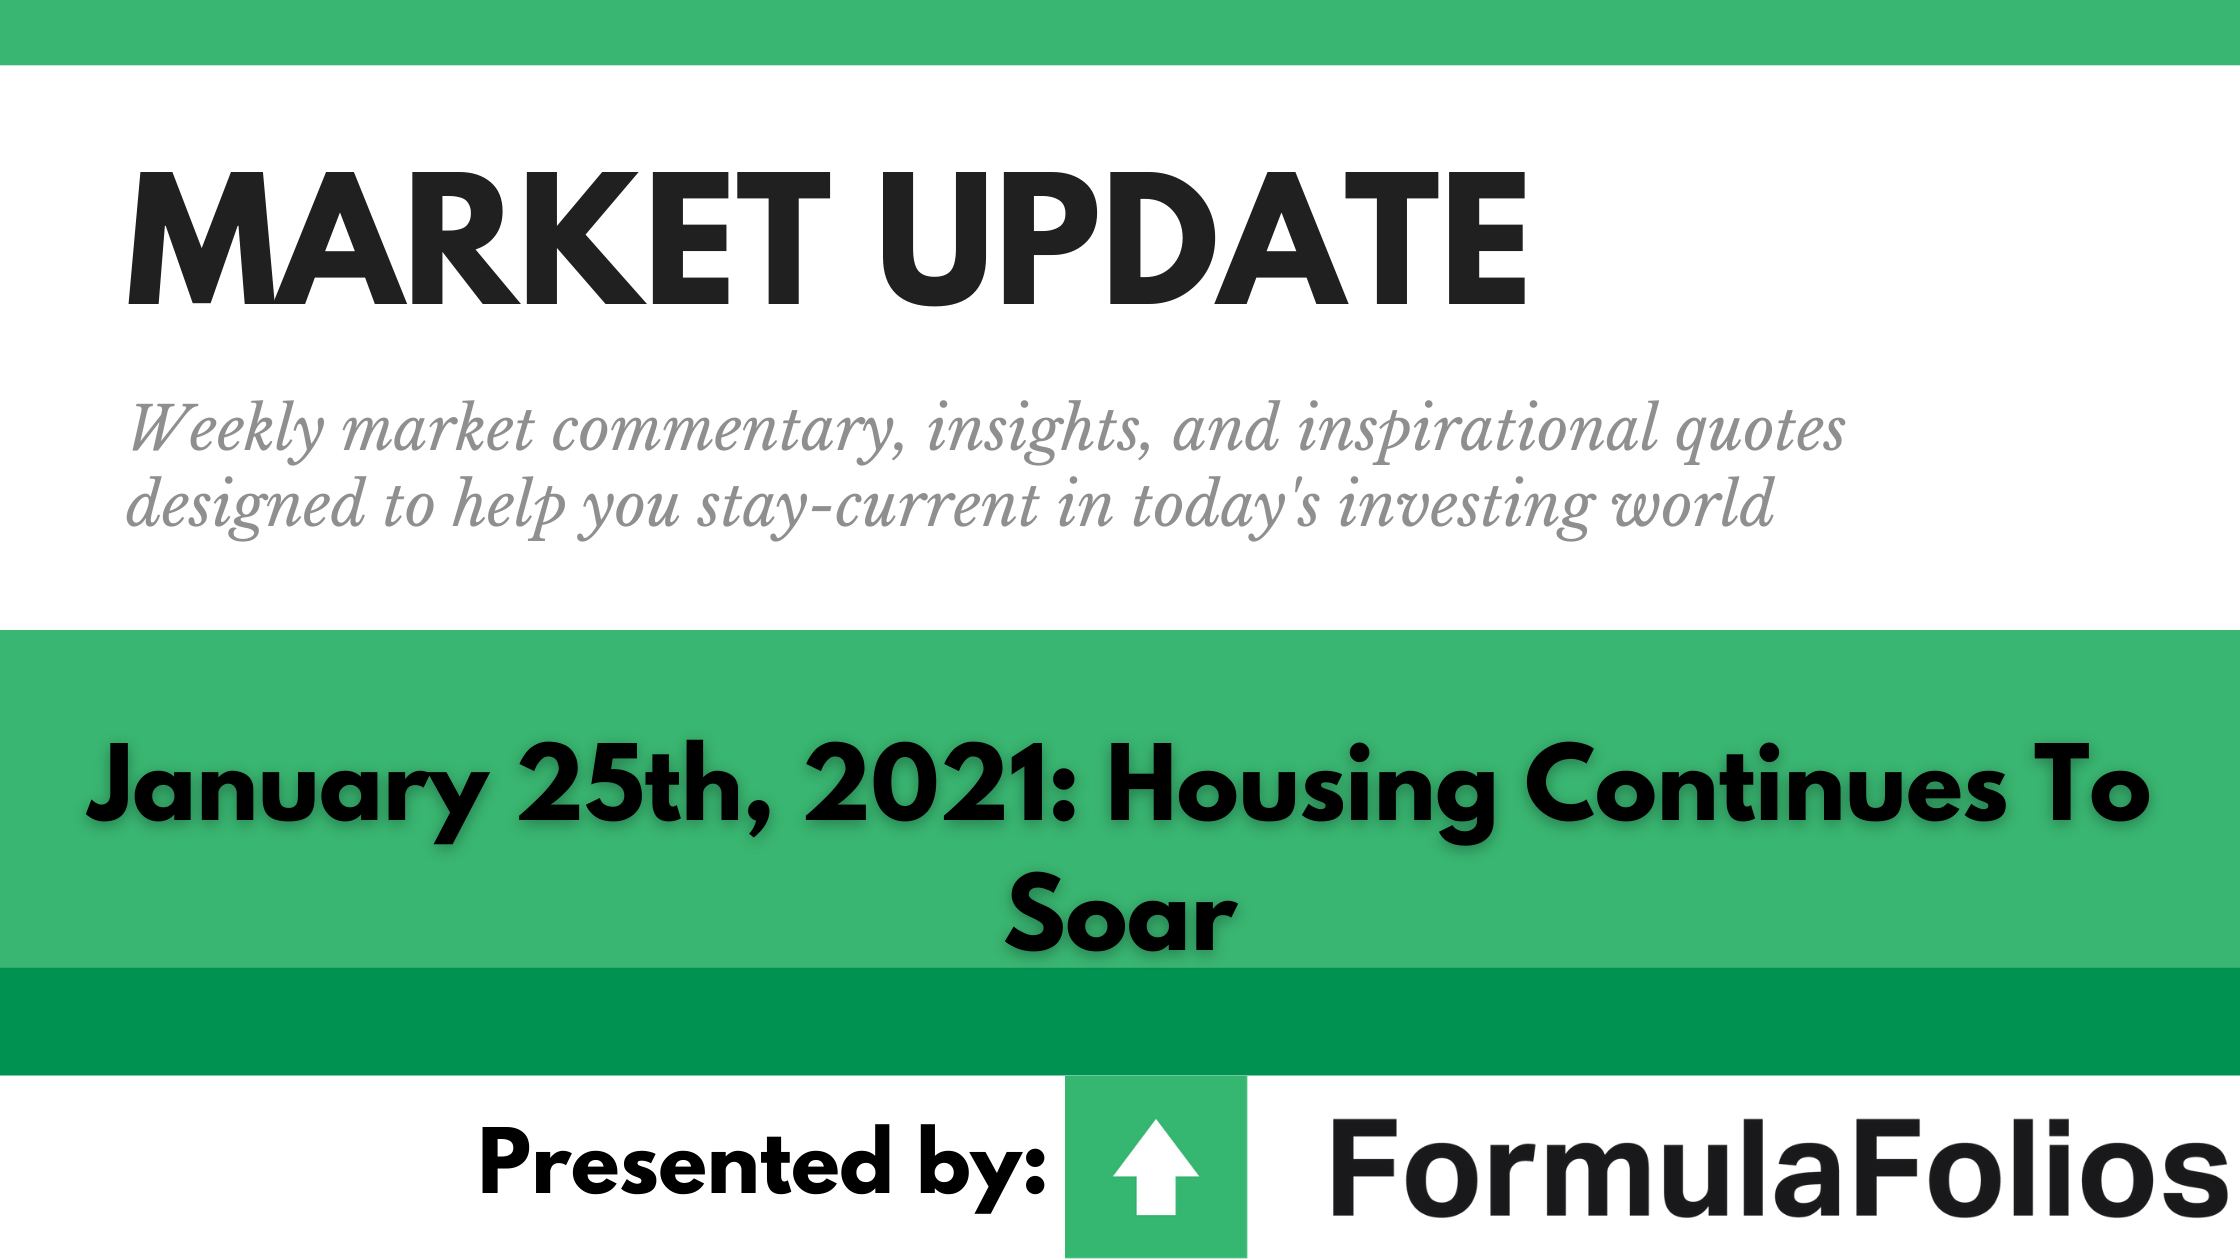 Market Update: Housing Continues To Soar